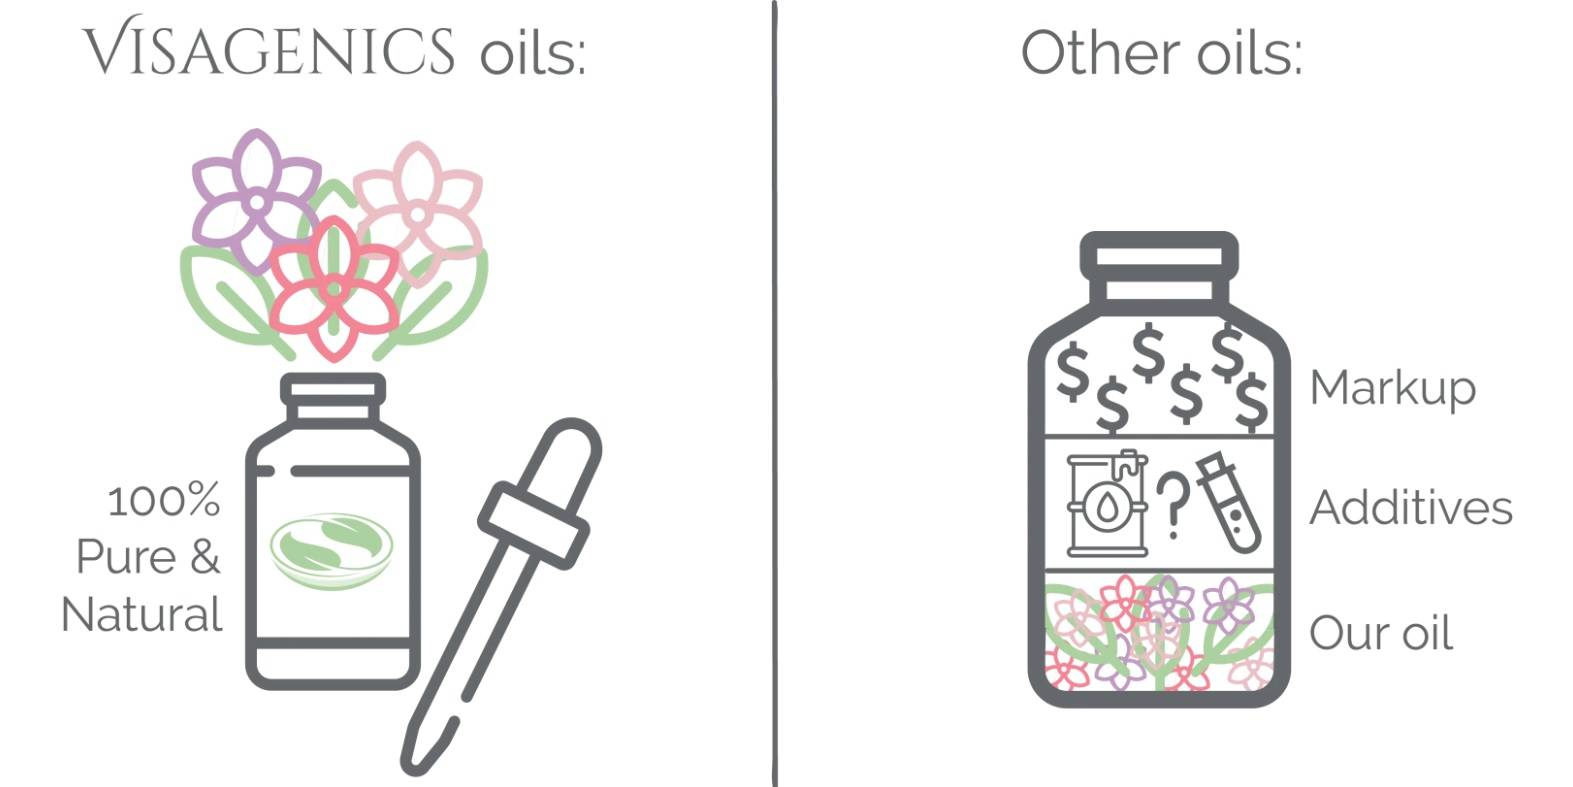 Castor Essential Oils vs Other Oils